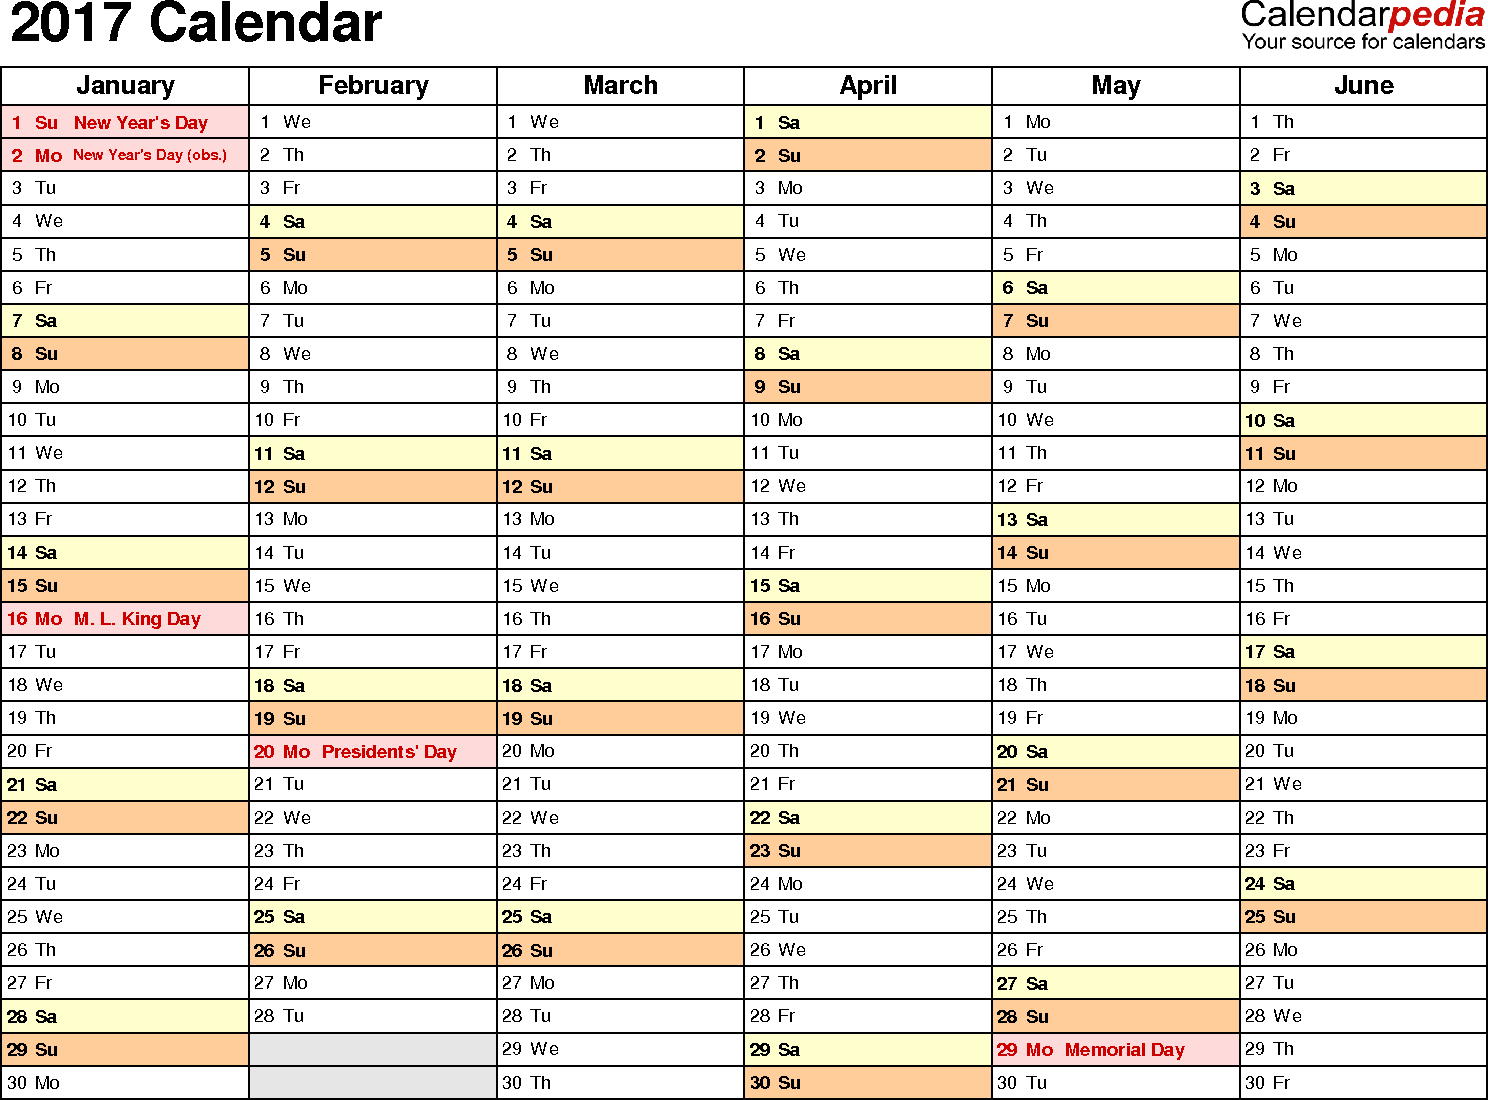 Ediblewildsus  Outstanding  Calendar  Download  Free Printable Excel Templates Xls With Exquisite Template   Calendar For Excel Months Horizontally  Pages Landscape Orientation With Adorable Excel Function Countif Also Convert Excel To Google Sheet In Addition Windows Excel For Mac And How To Open Mpp File In Excel As Well As How To Format A Column In Excel Additionally Excel Formula Remove Duplicates From Calendarpediacom With Ediblewildsus  Exquisite  Calendar  Download  Free Printable Excel Templates Xls With Adorable Template   Calendar For Excel Months Horizontally  Pages Landscape Orientation And Outstanding Excel Function Countif Also Convert Excel To Google Sheet In Addition Windows Excel For Mac From Calendarpediacom